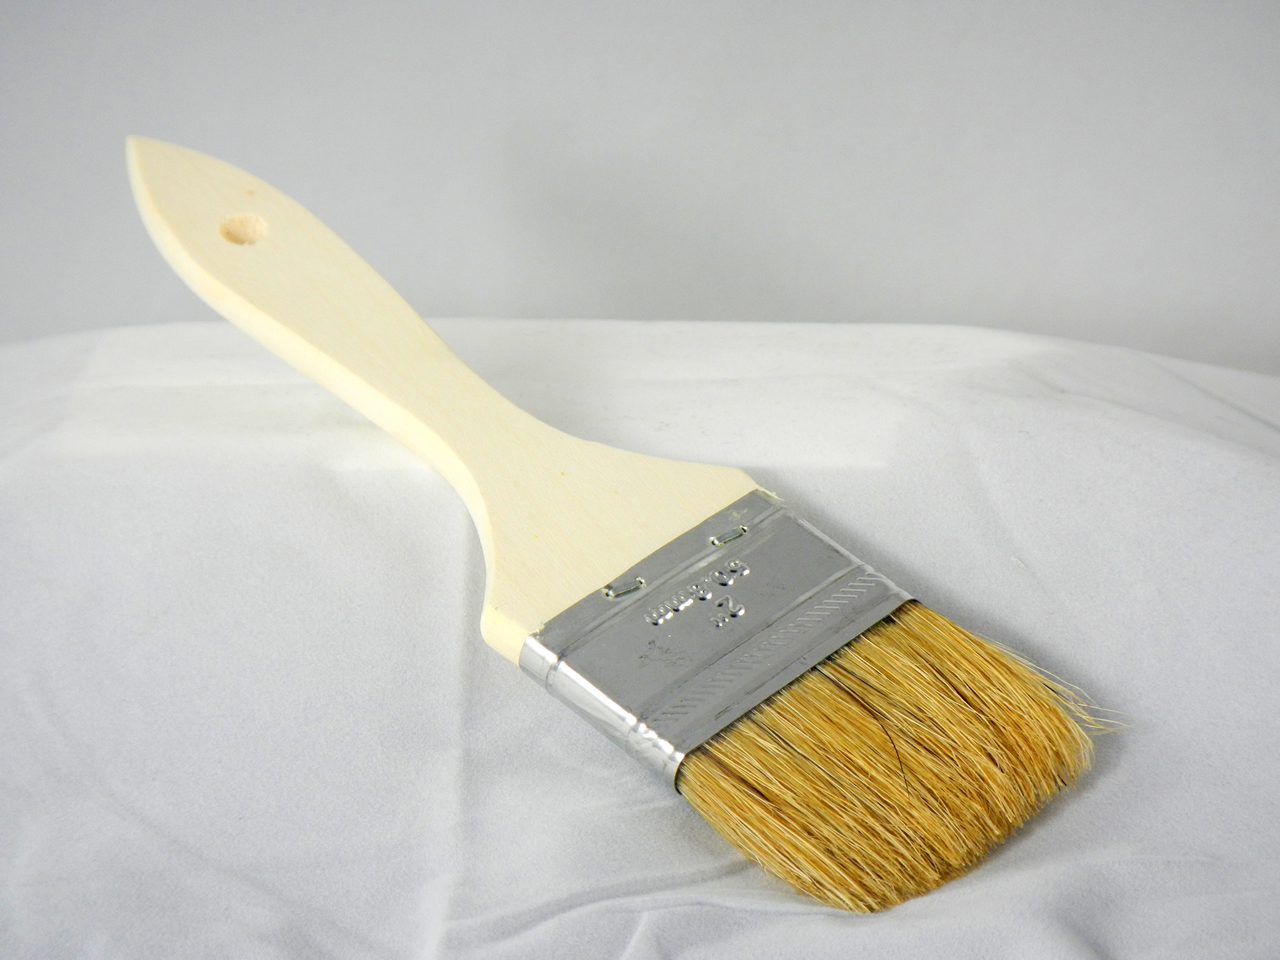 trim-brush-1280.jpg